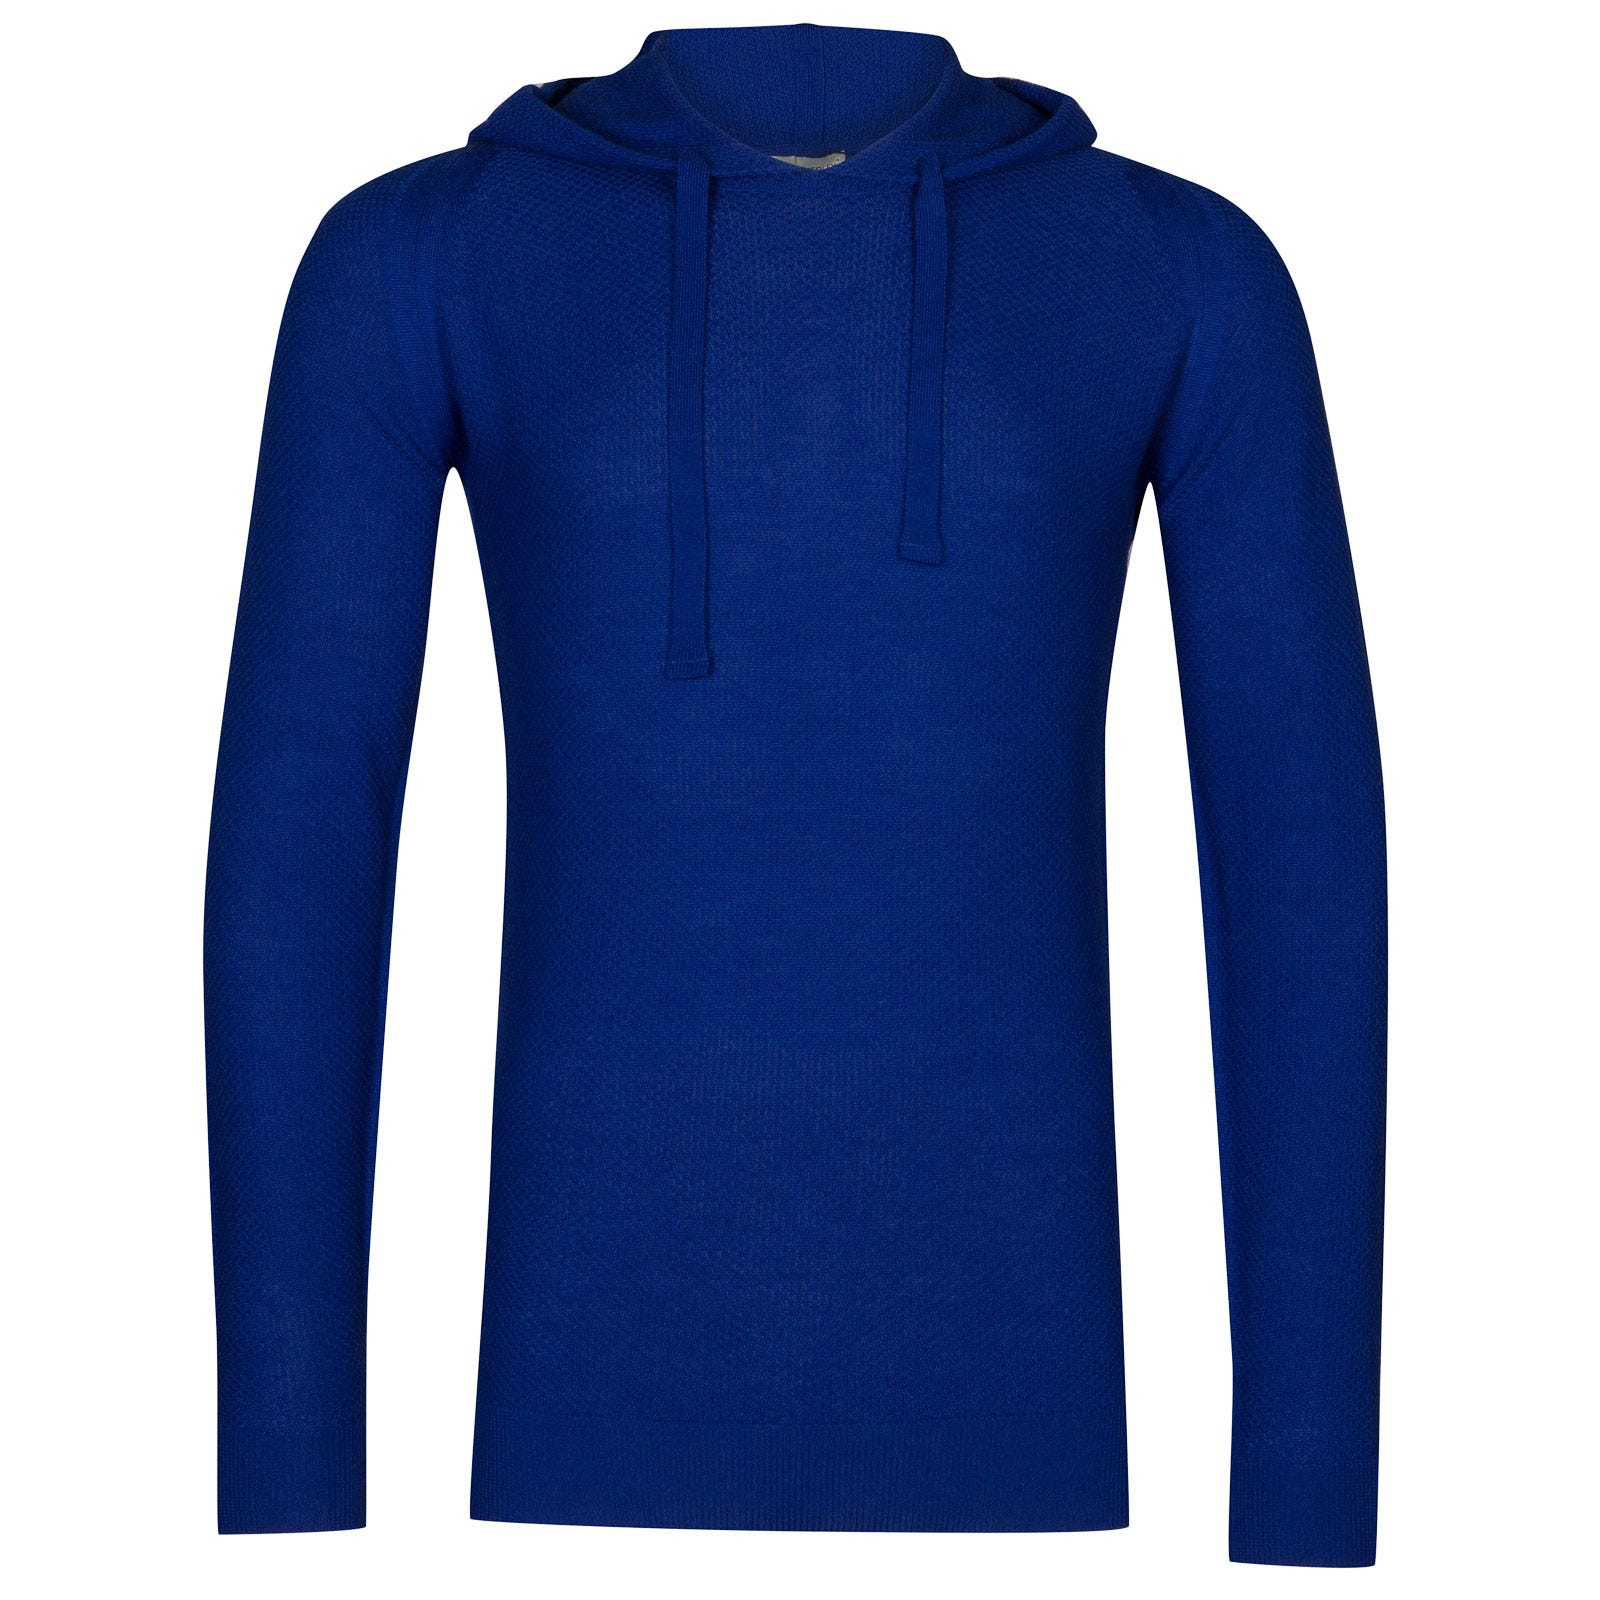 John Smedley 4Singular Merino Wool Pullover in Coniston Blue-XL